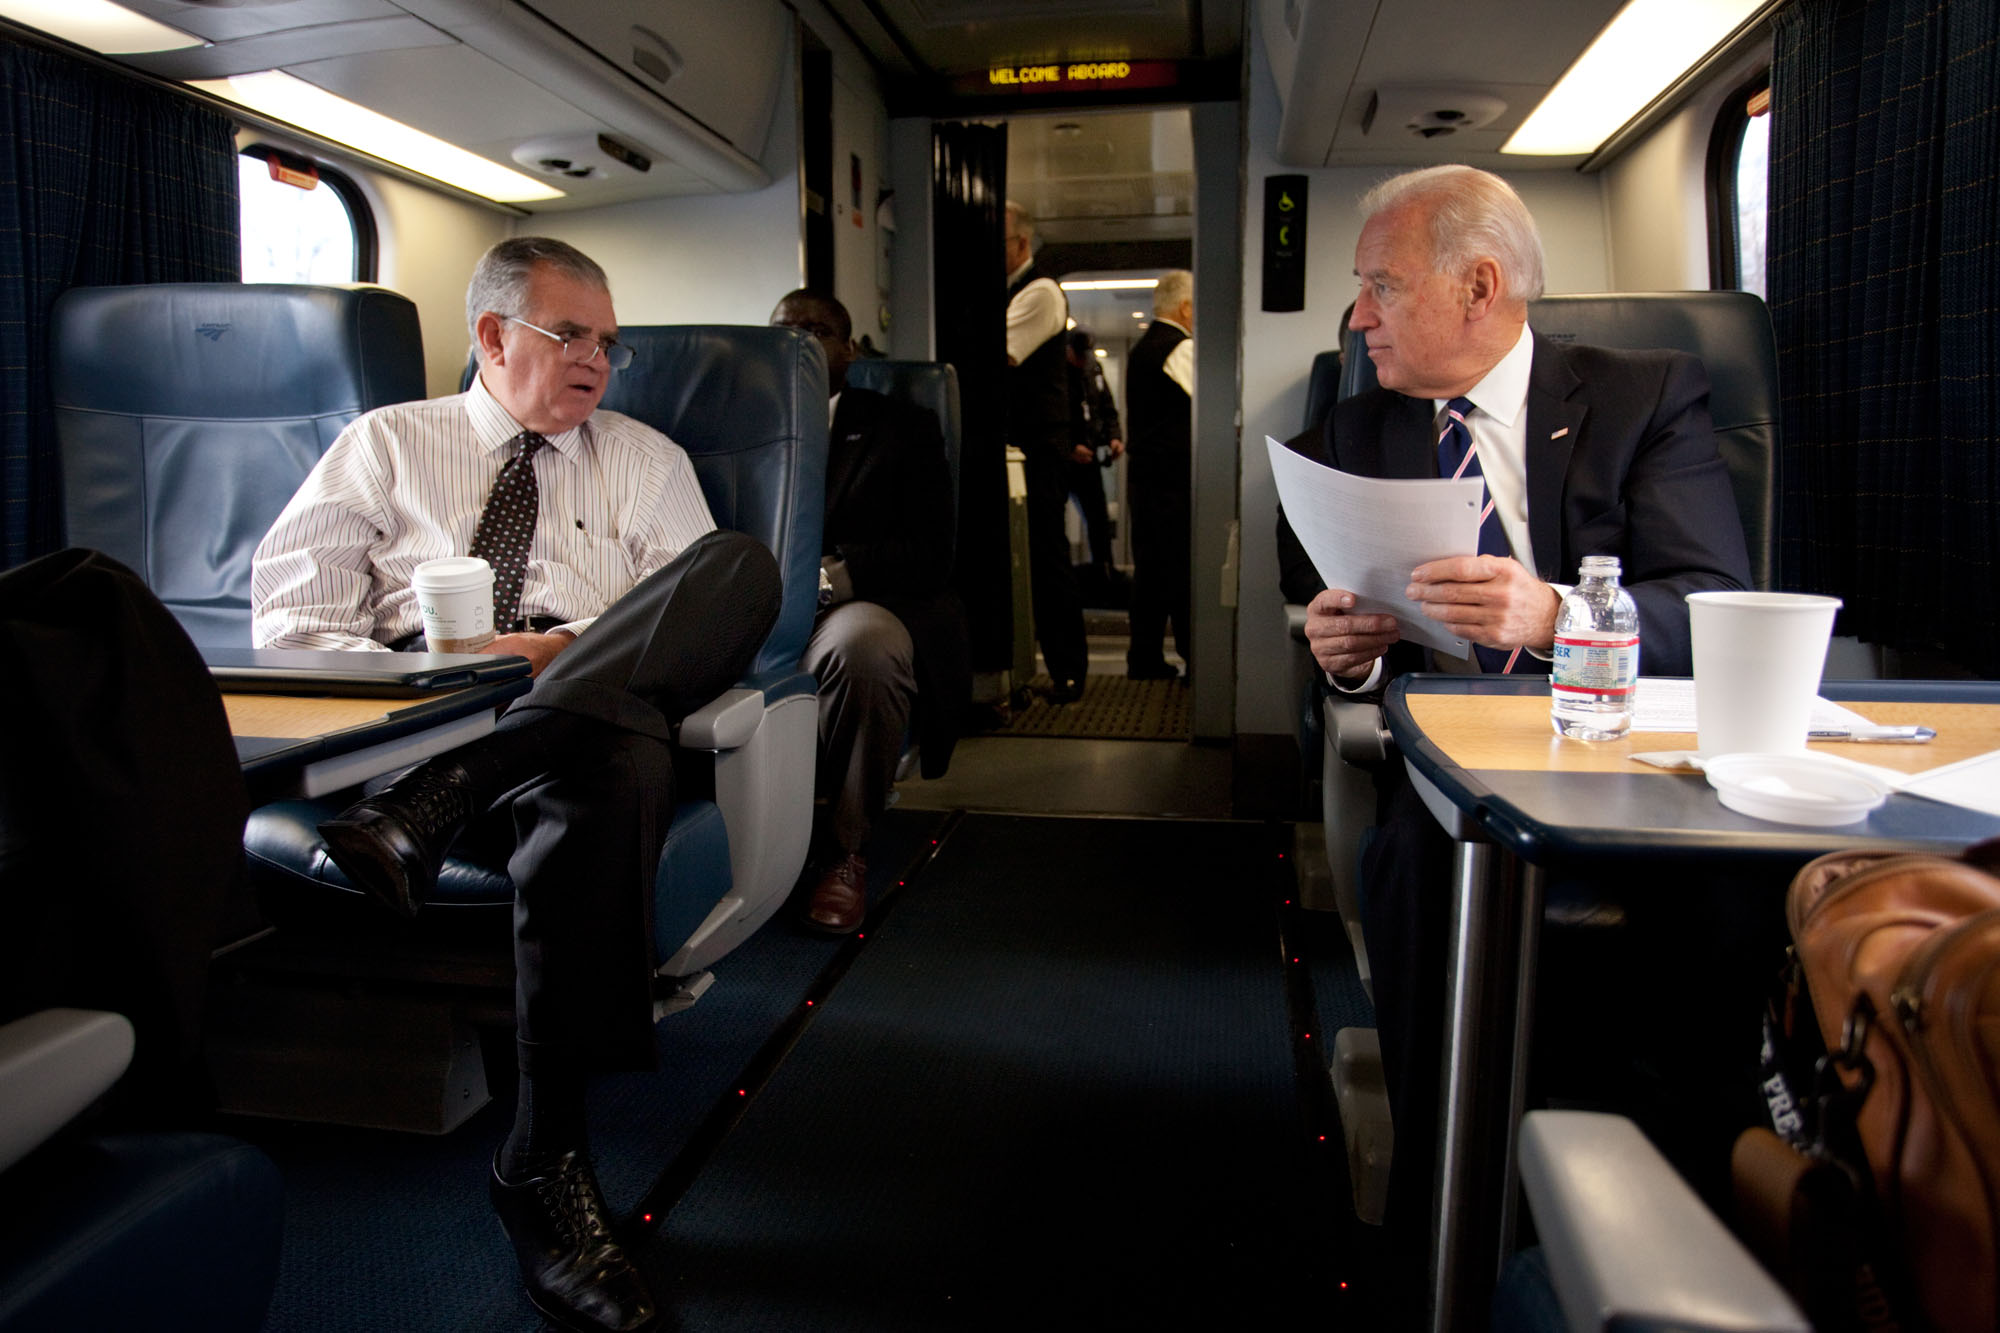 Vice President Biden and Secretary LaHood Ride Train to Philadelphia